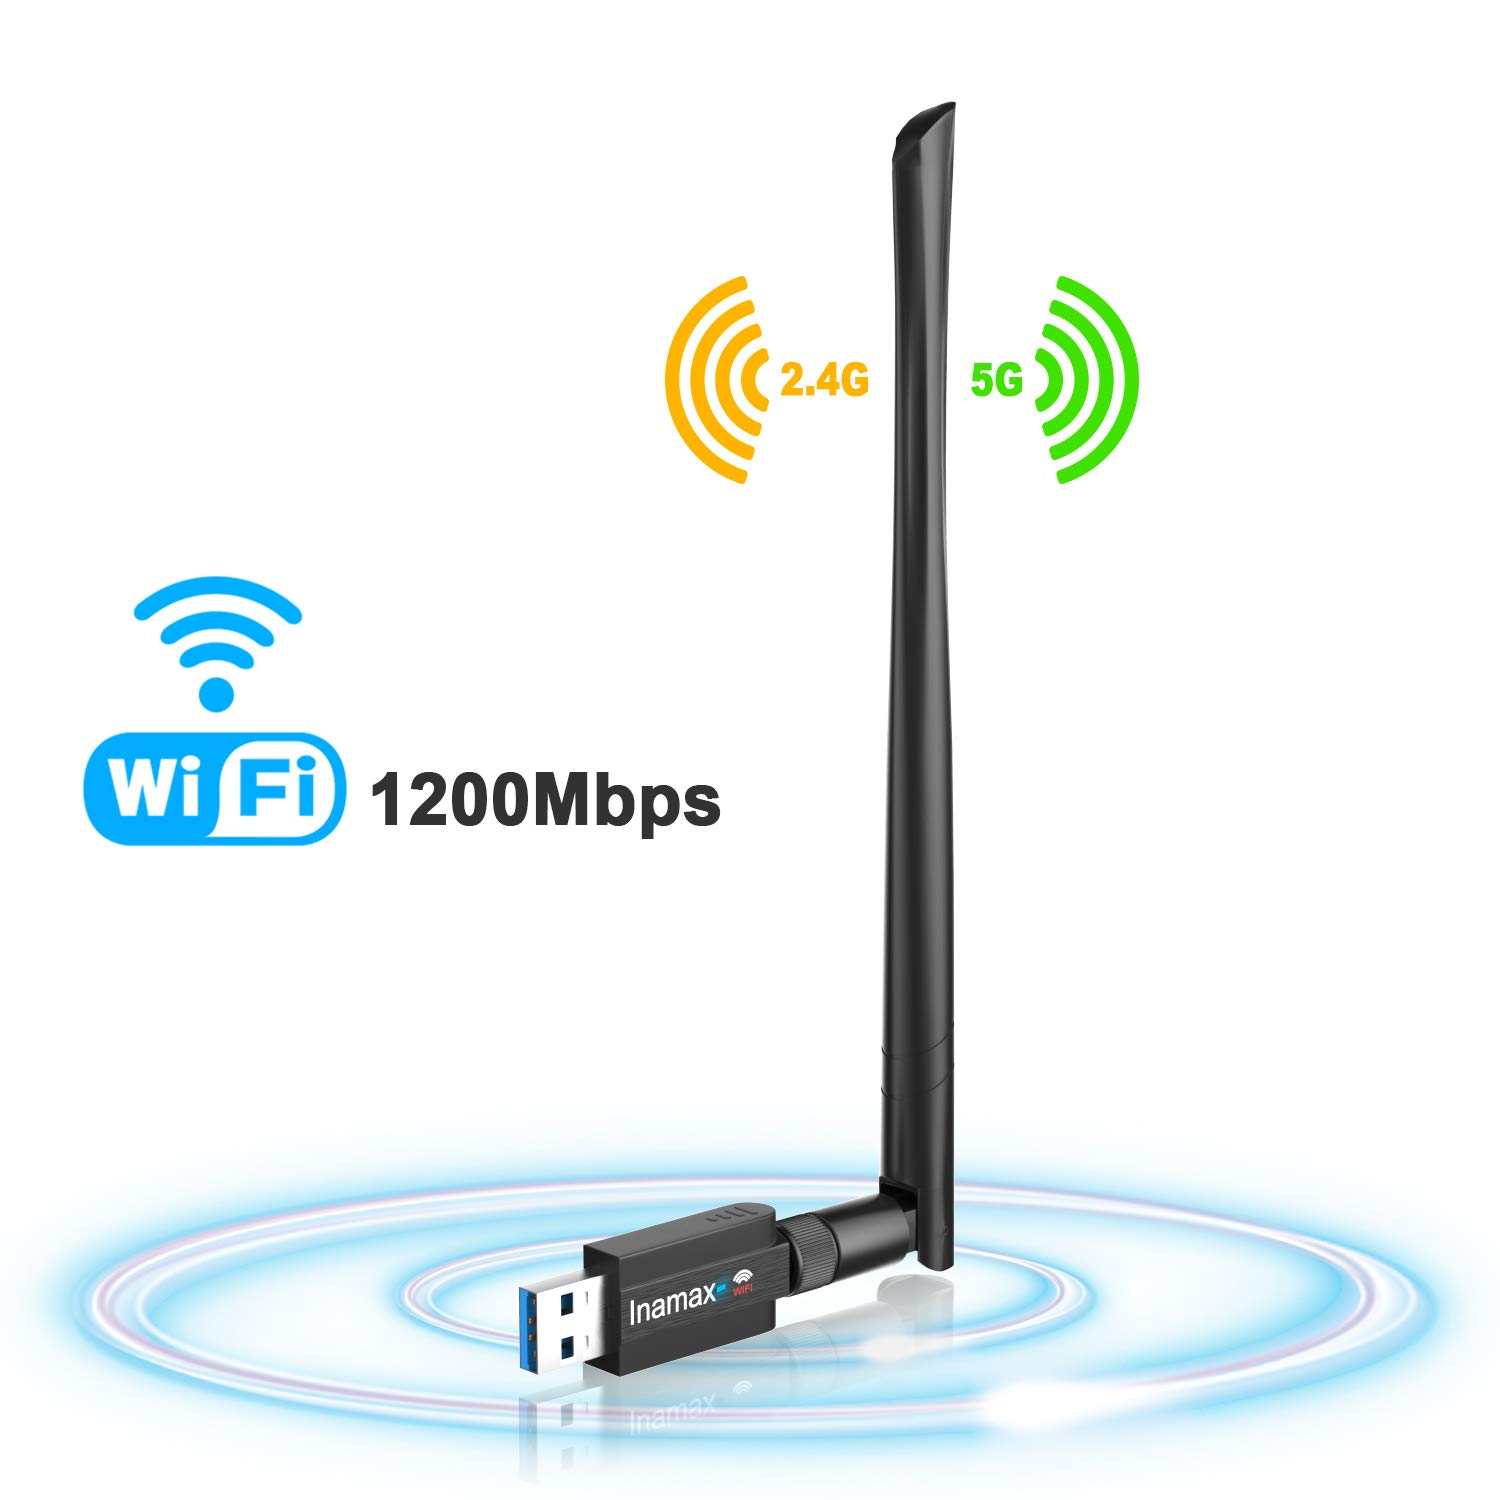 USB WiFi Adapter 1200Mbps, USB 3.0 Wireless Network WiFi Dongle with 5dBi Antenna for Desktop Laptop PC Mac, Dual Band 2.4G/5G 802.11ac,Support Windows 10/8/8.1/7/Vista/XP,Mac10.5-10.13